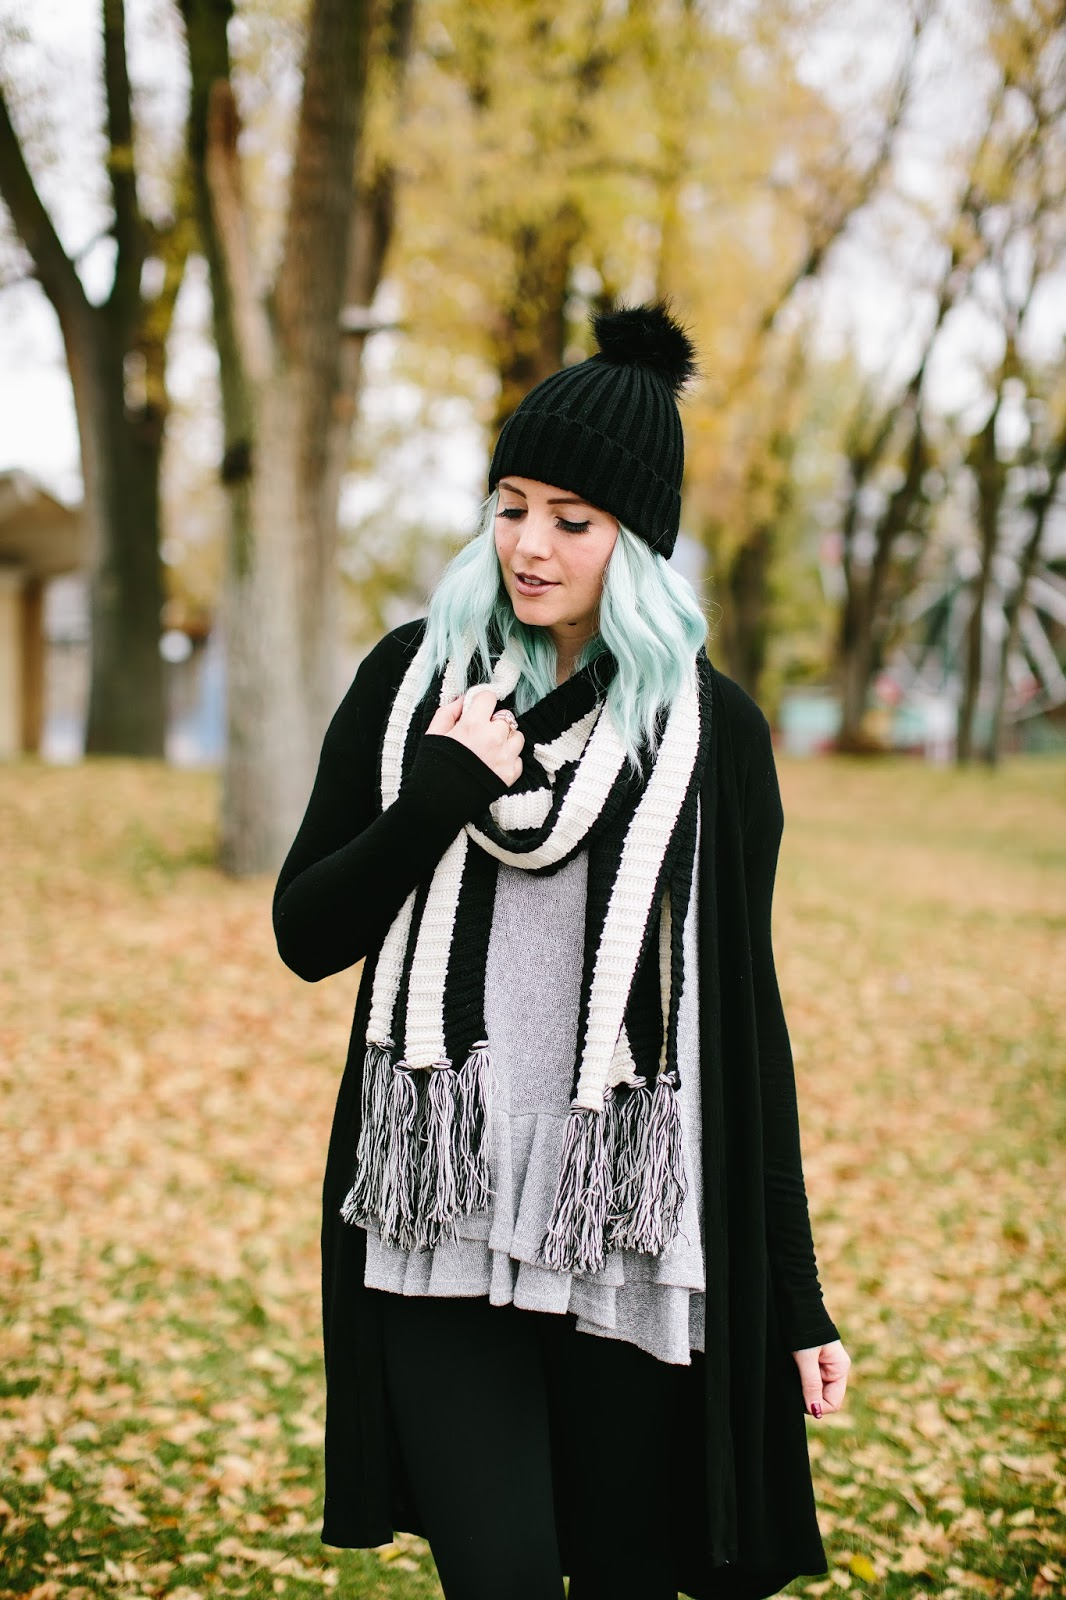 Scarf, Tassel Scarf, Fashion Blogger